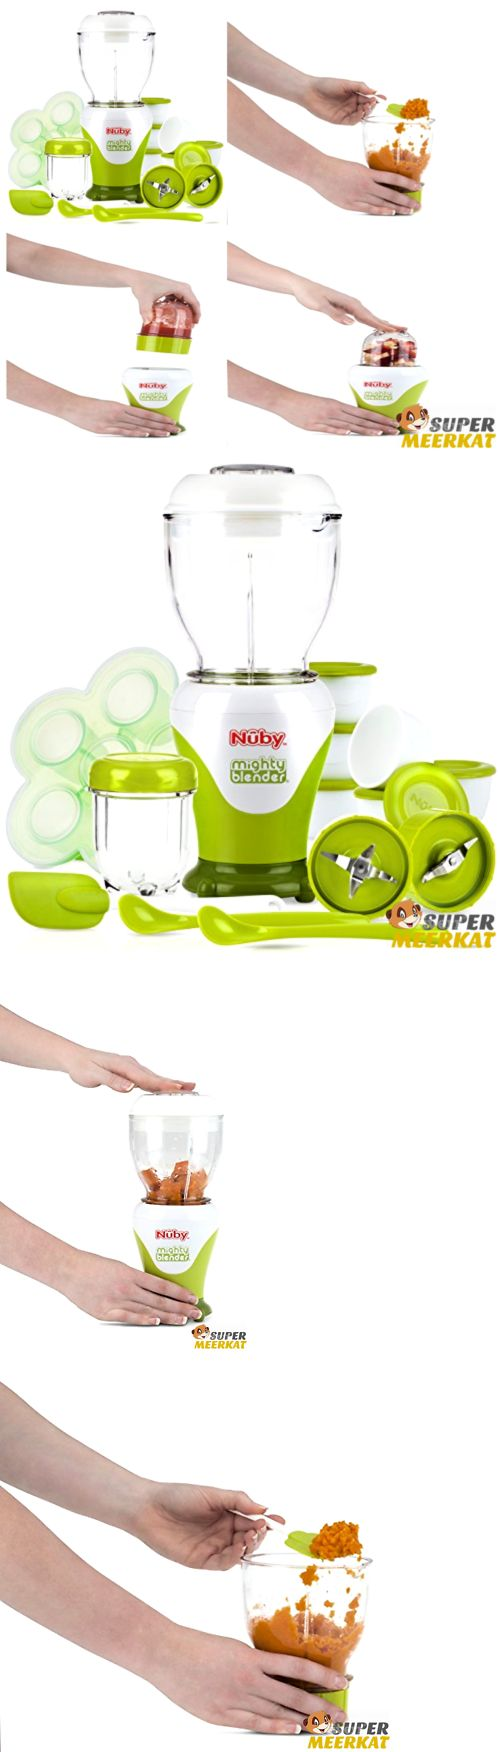 Food Grinders and Blenders 32866: Blender Food Mill Steamer Mixer Machine For Baby Feeding Fruit Veggie Smoothie -> BUY IT NOW ONLY: $66.62 on eBay!